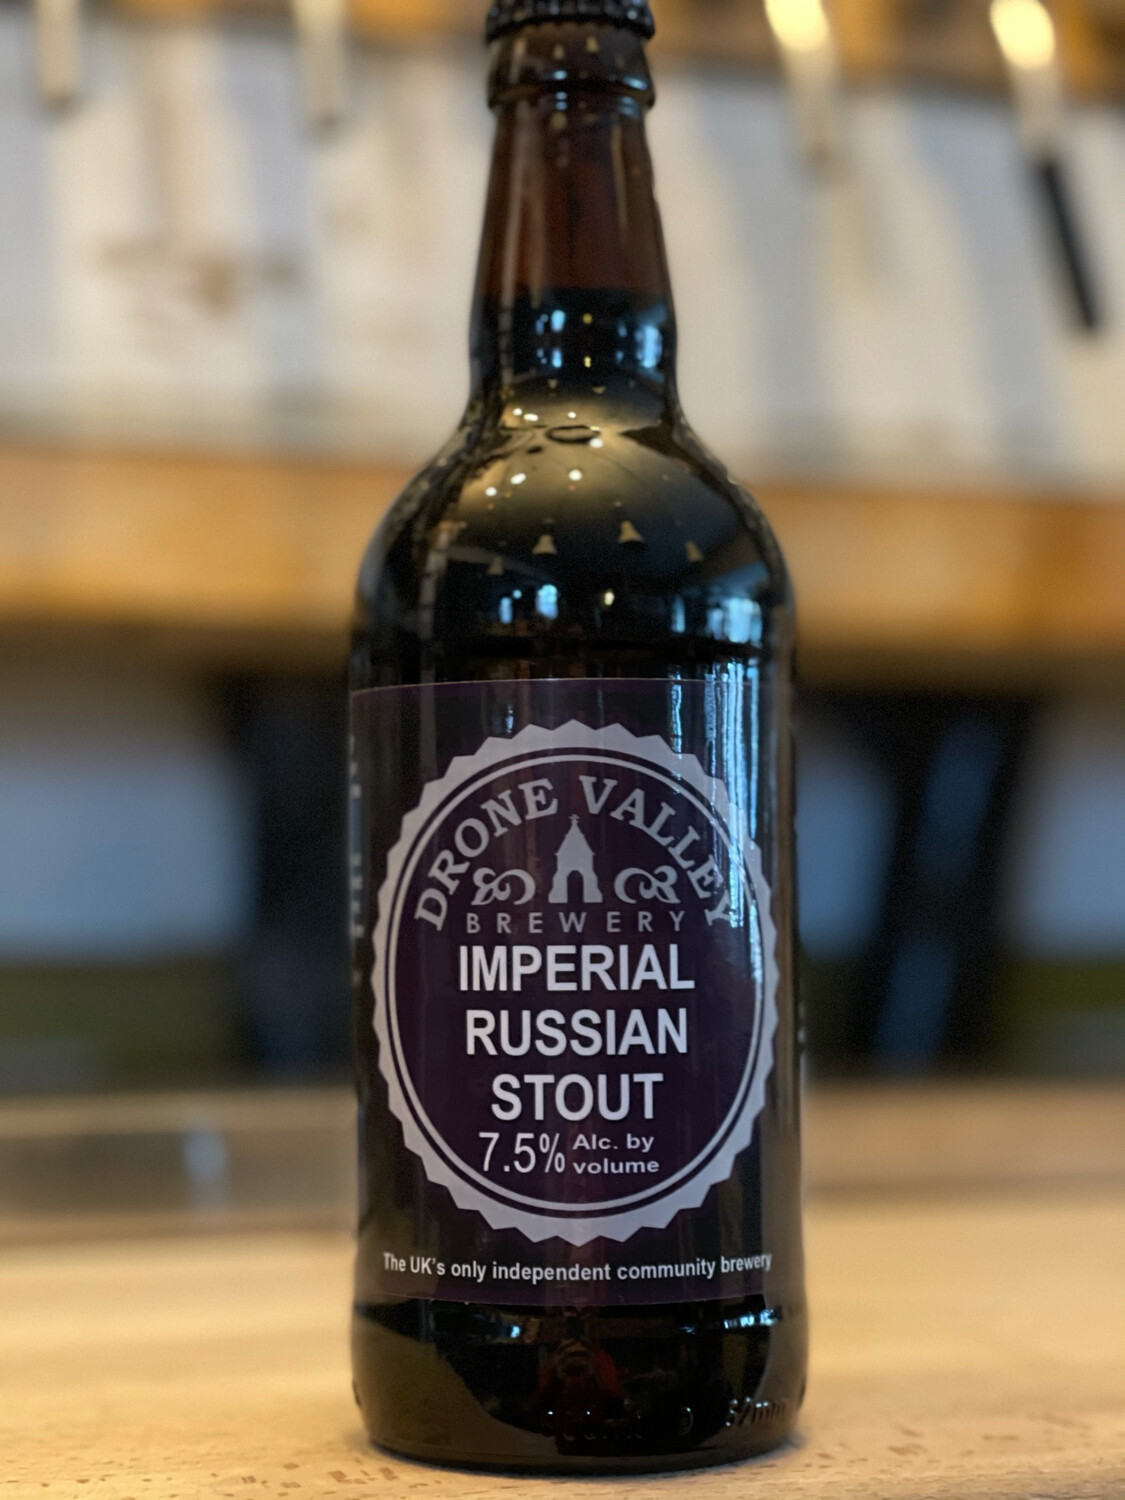 DRONE VALLEY - IMPERIAL RUSSIAN STOUT